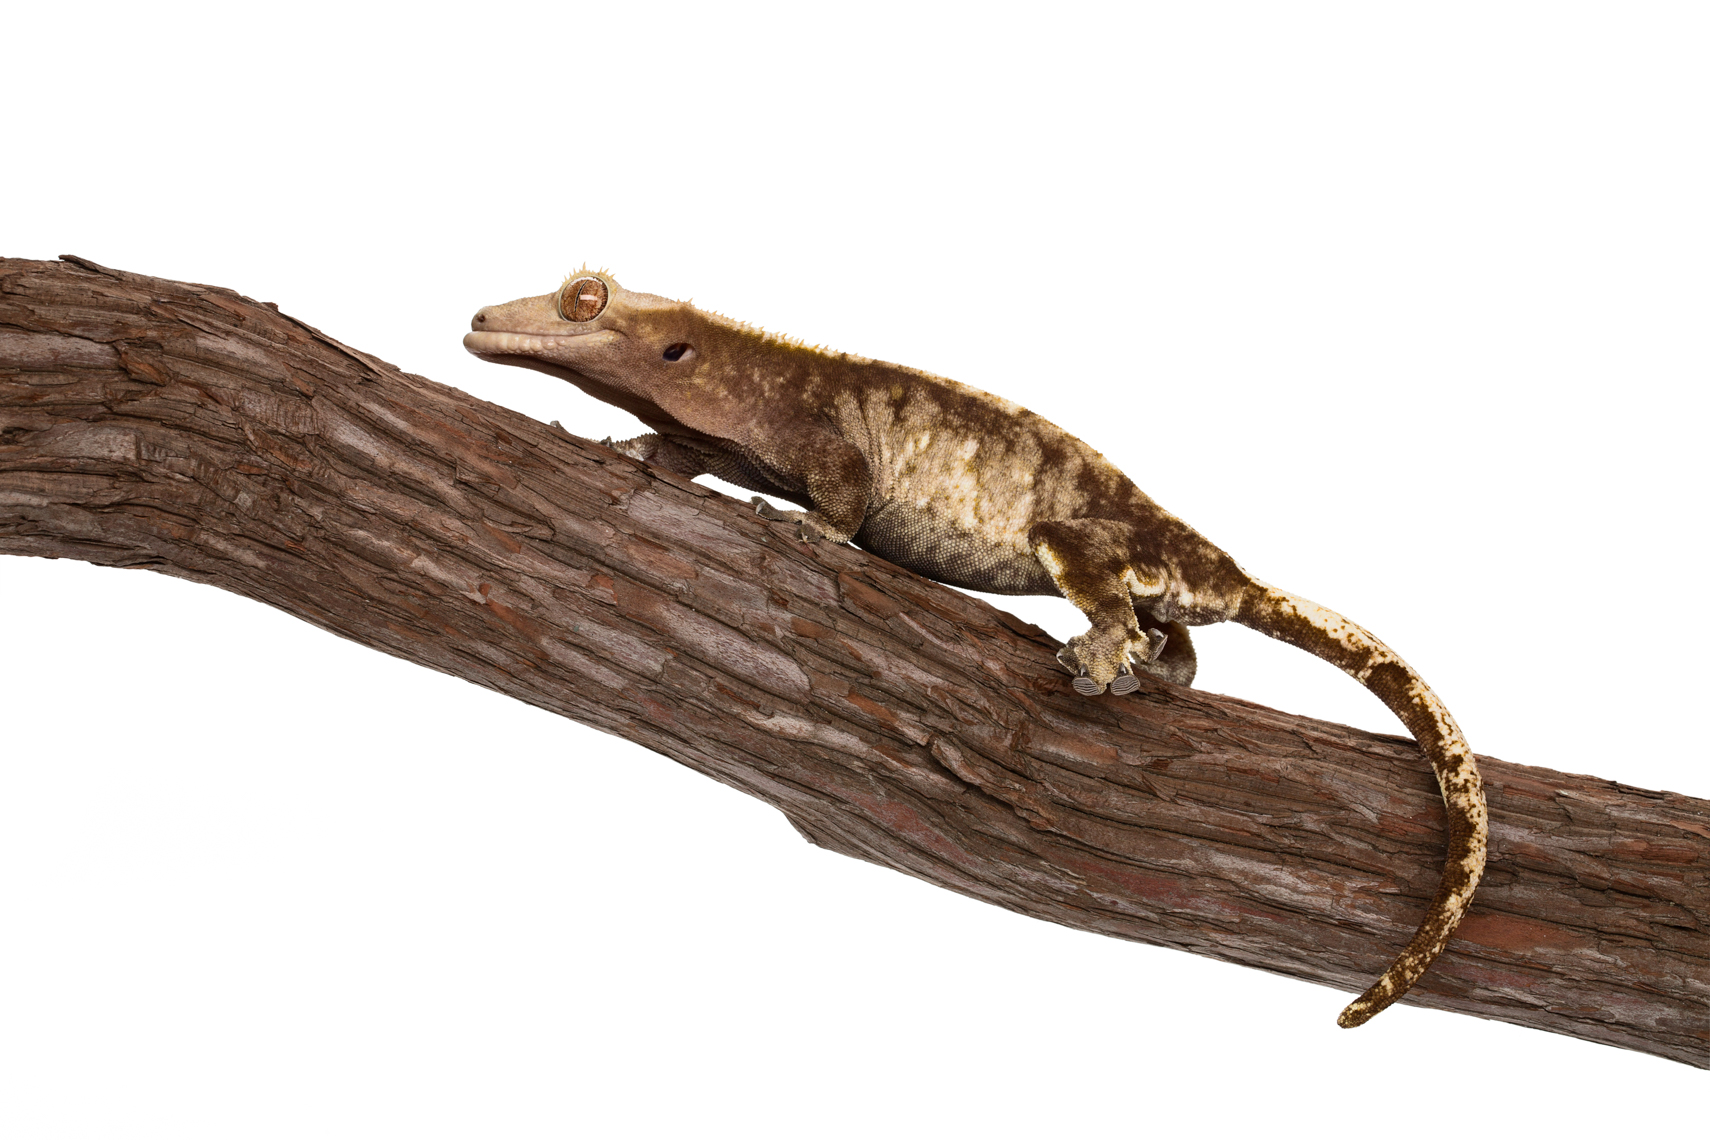 Crested Gecko climbing on tree